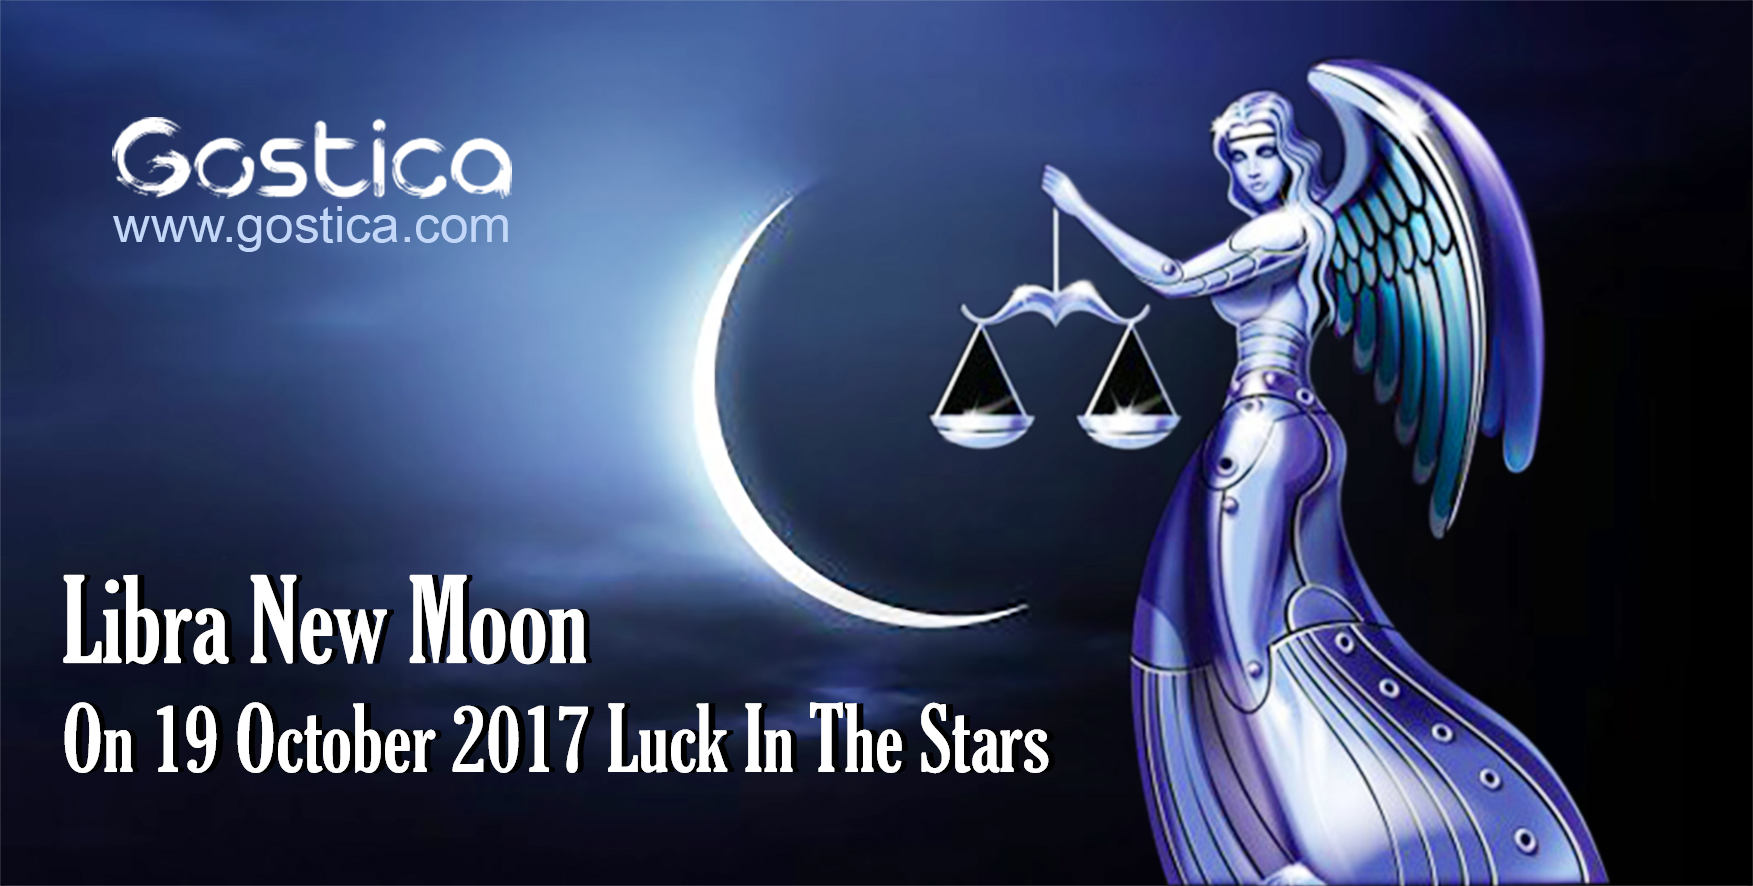 Libra-New-Moon-On-19-October-2017-—-Luck-In-The-Stars.jpg